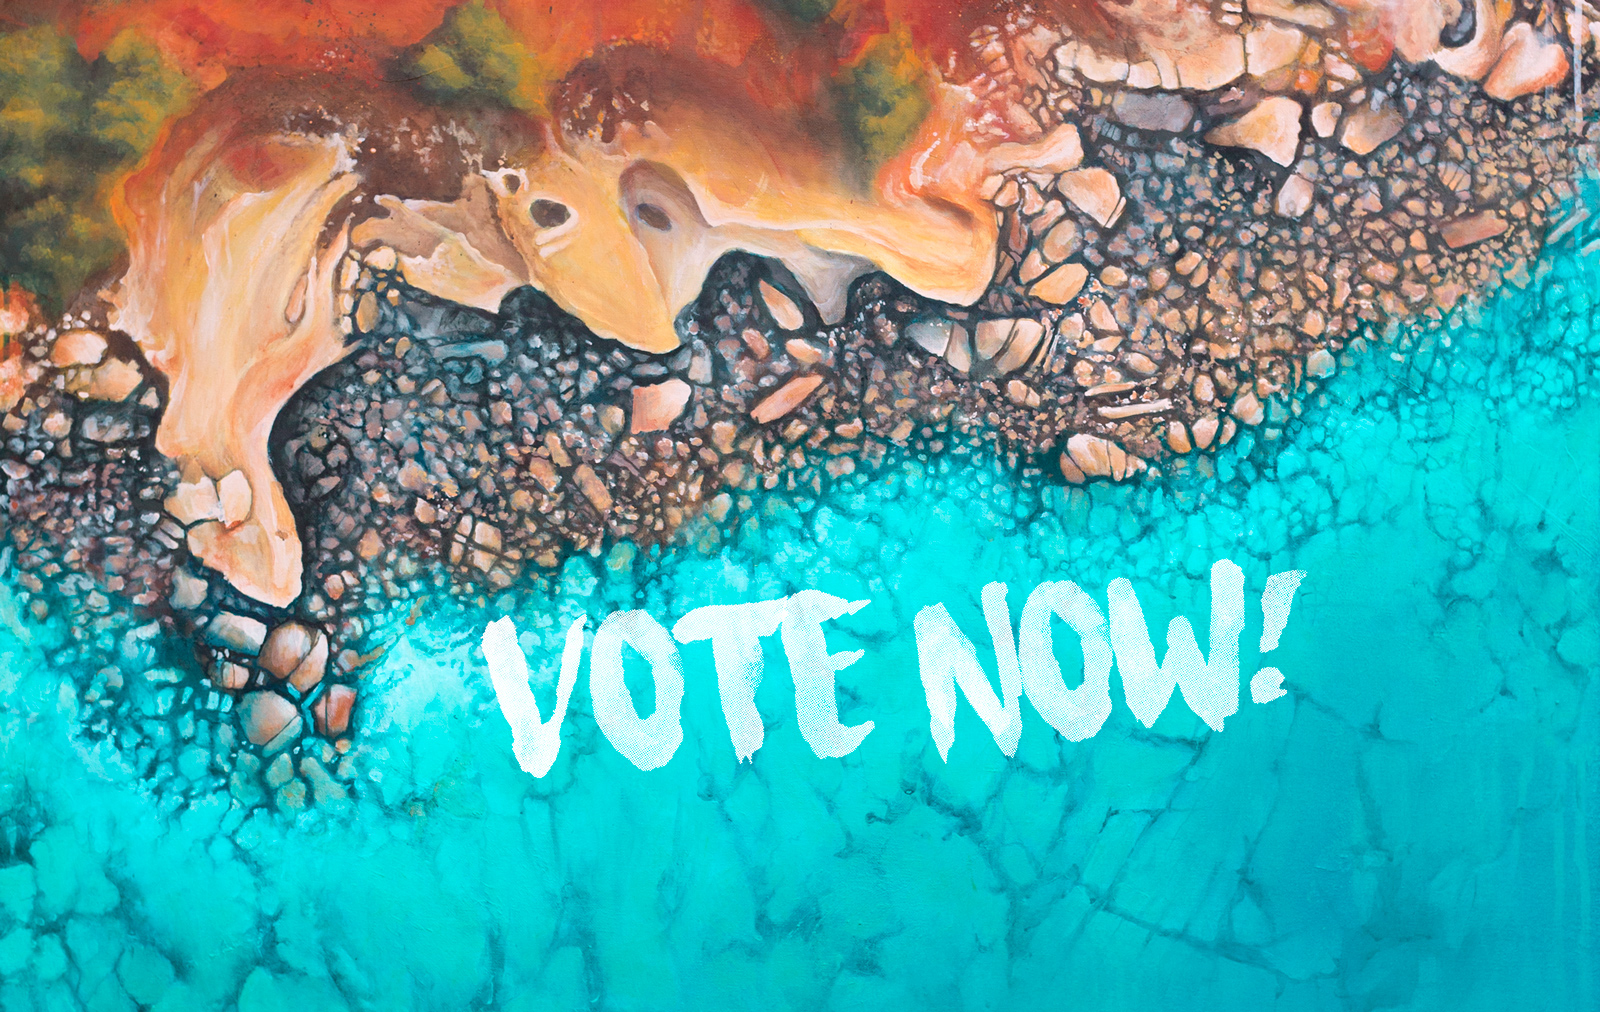 Bluethumb Art Prize : Vote for Scott Denholm -Love Over Gold - People's Choice Award